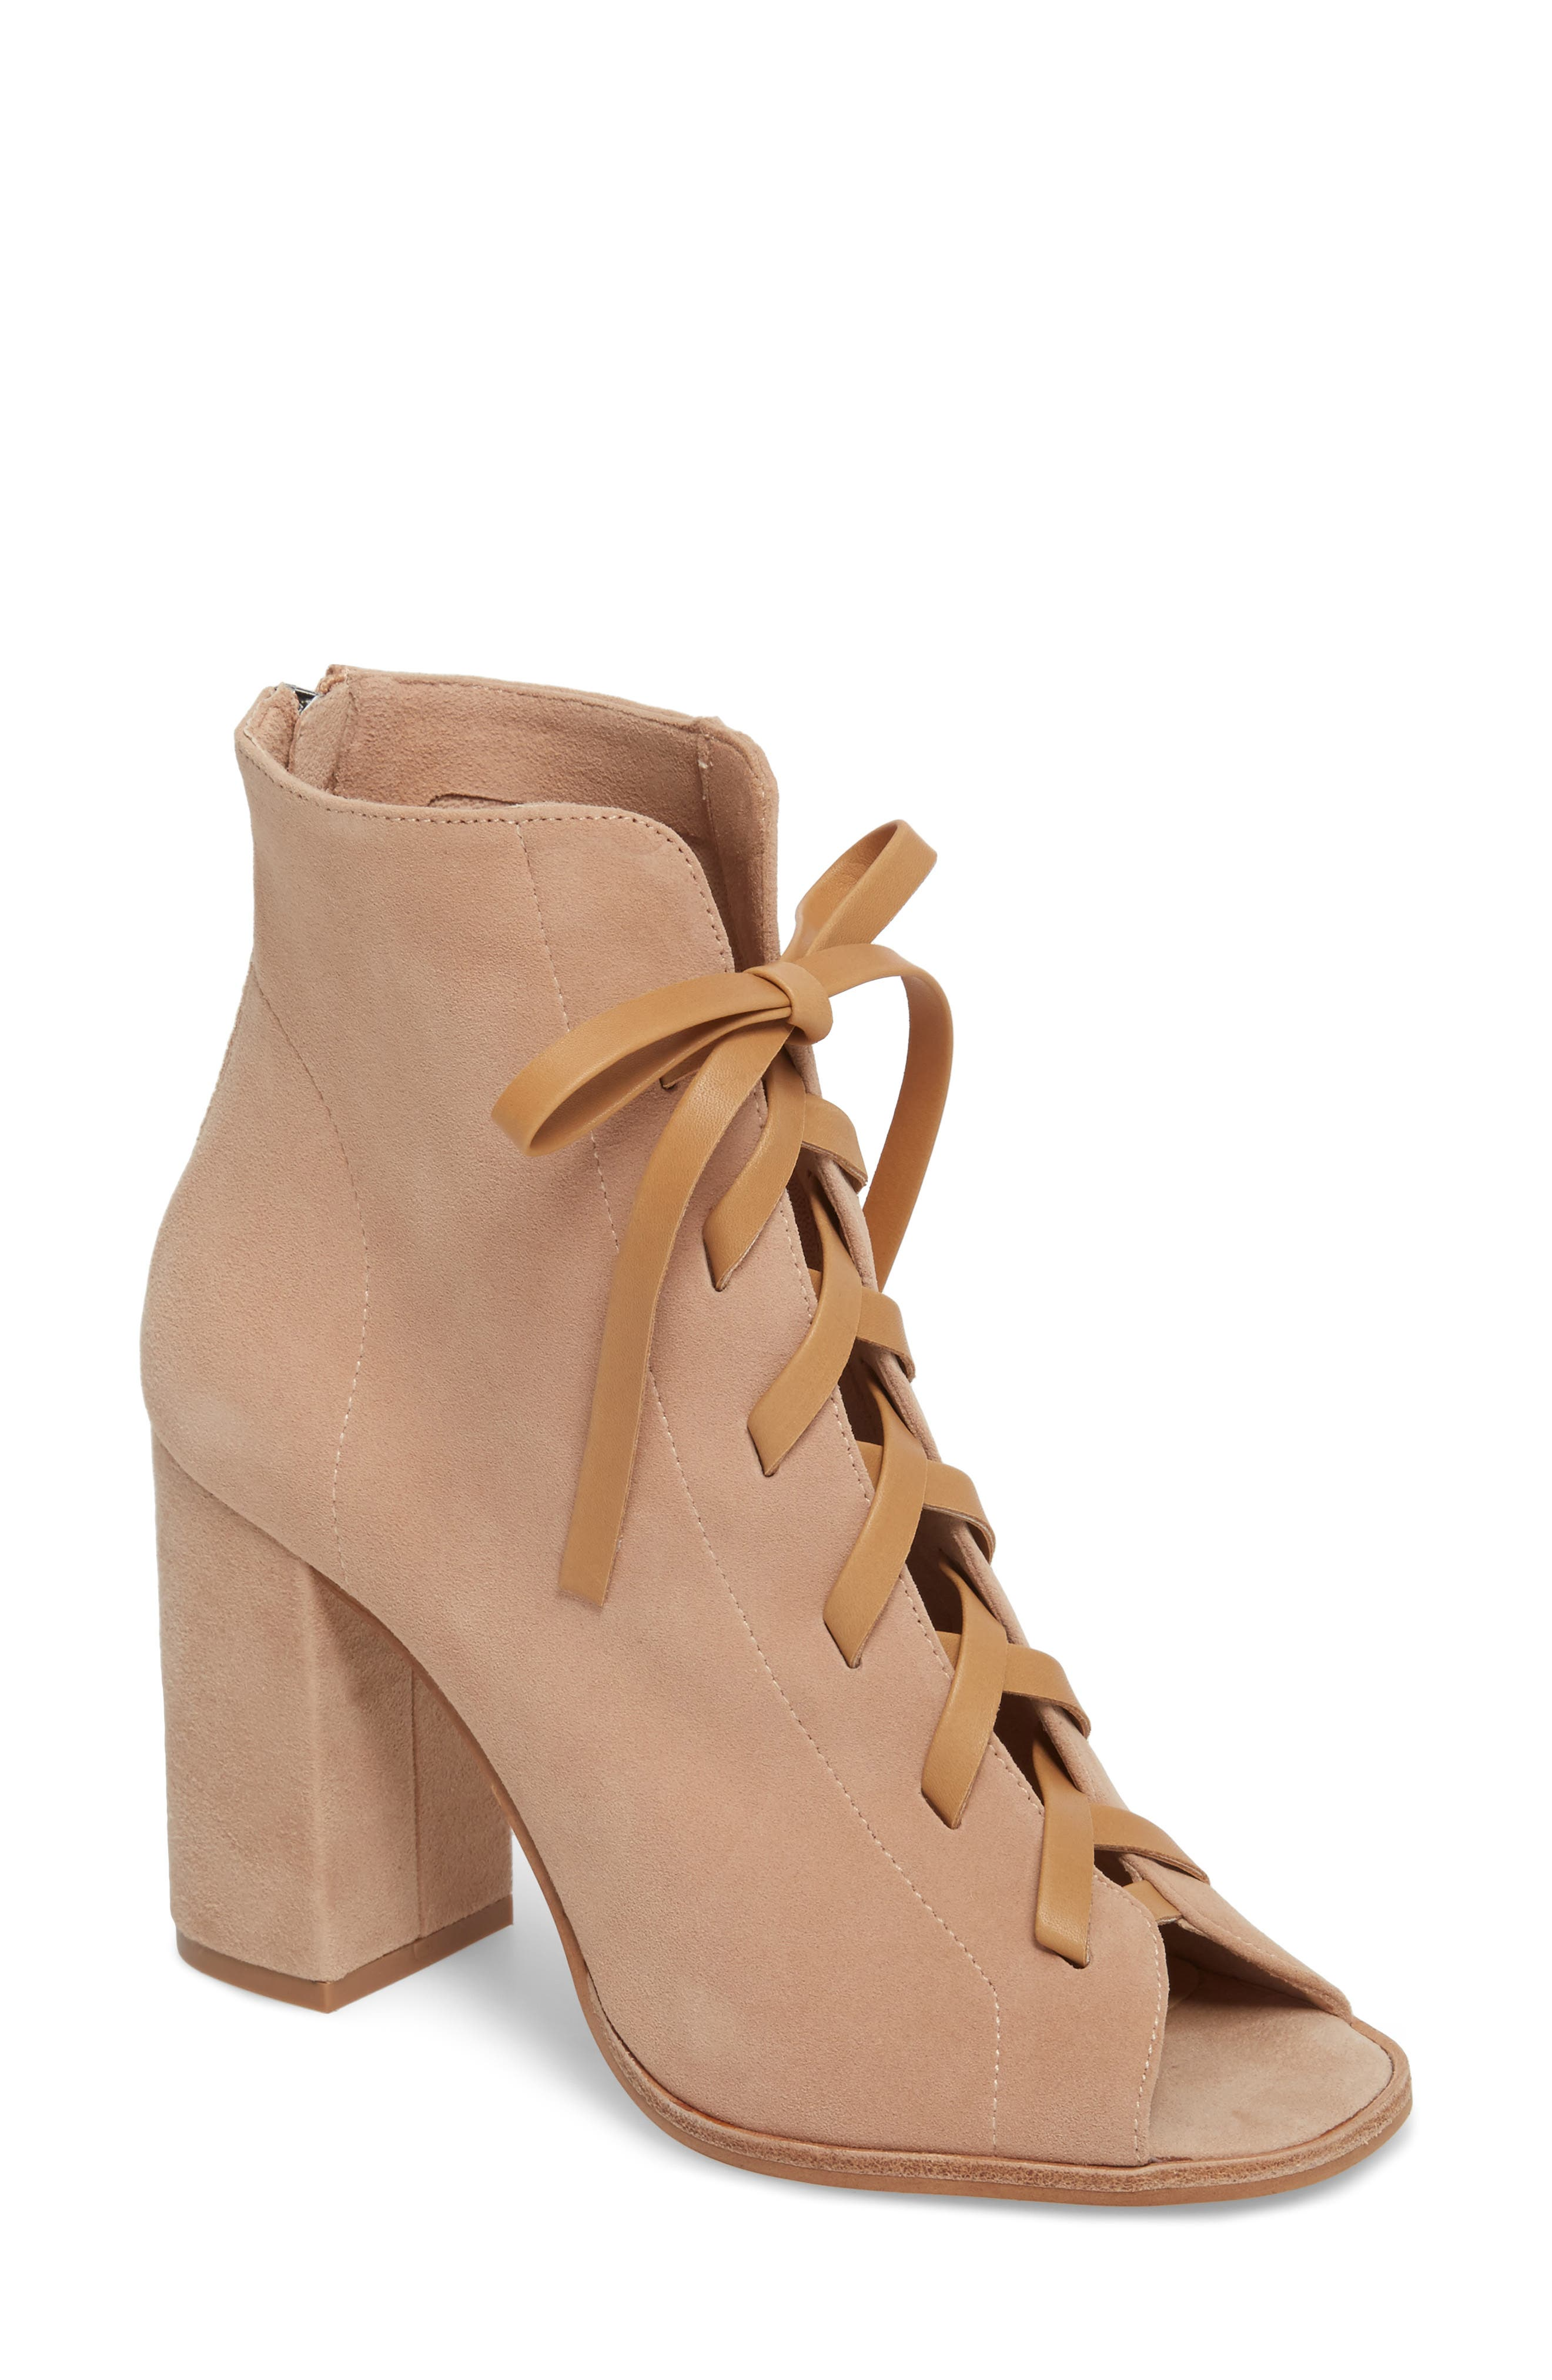 Layton Lace-Up Boot,                             Main thumbnail 1, color,                             Tigers Eye Suede